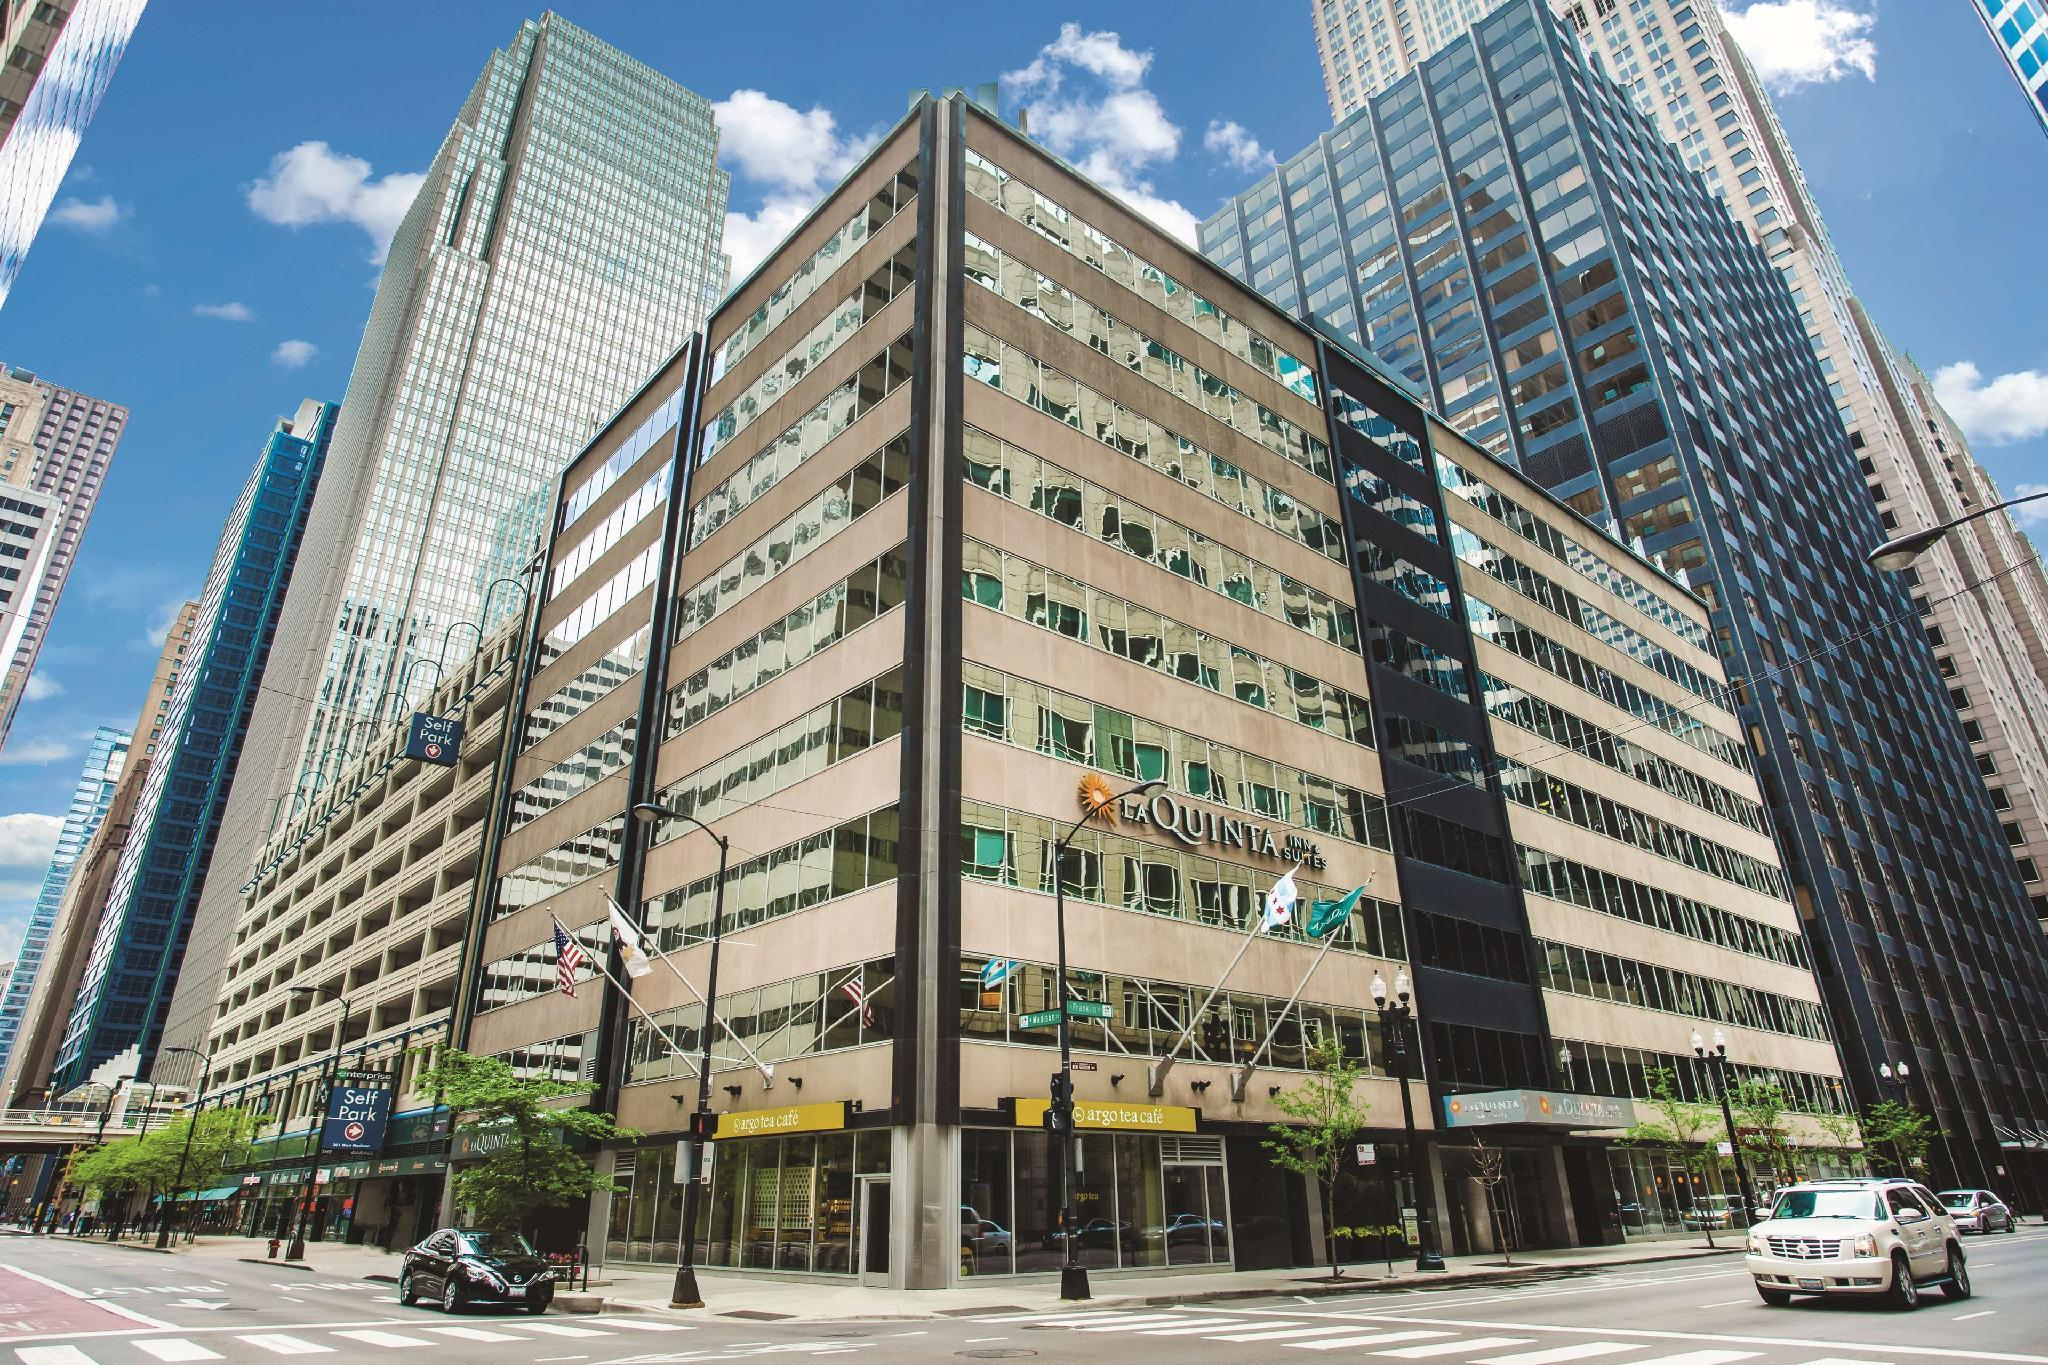 La Quinta Inn And Suites By Wyndham Chicago Downtown